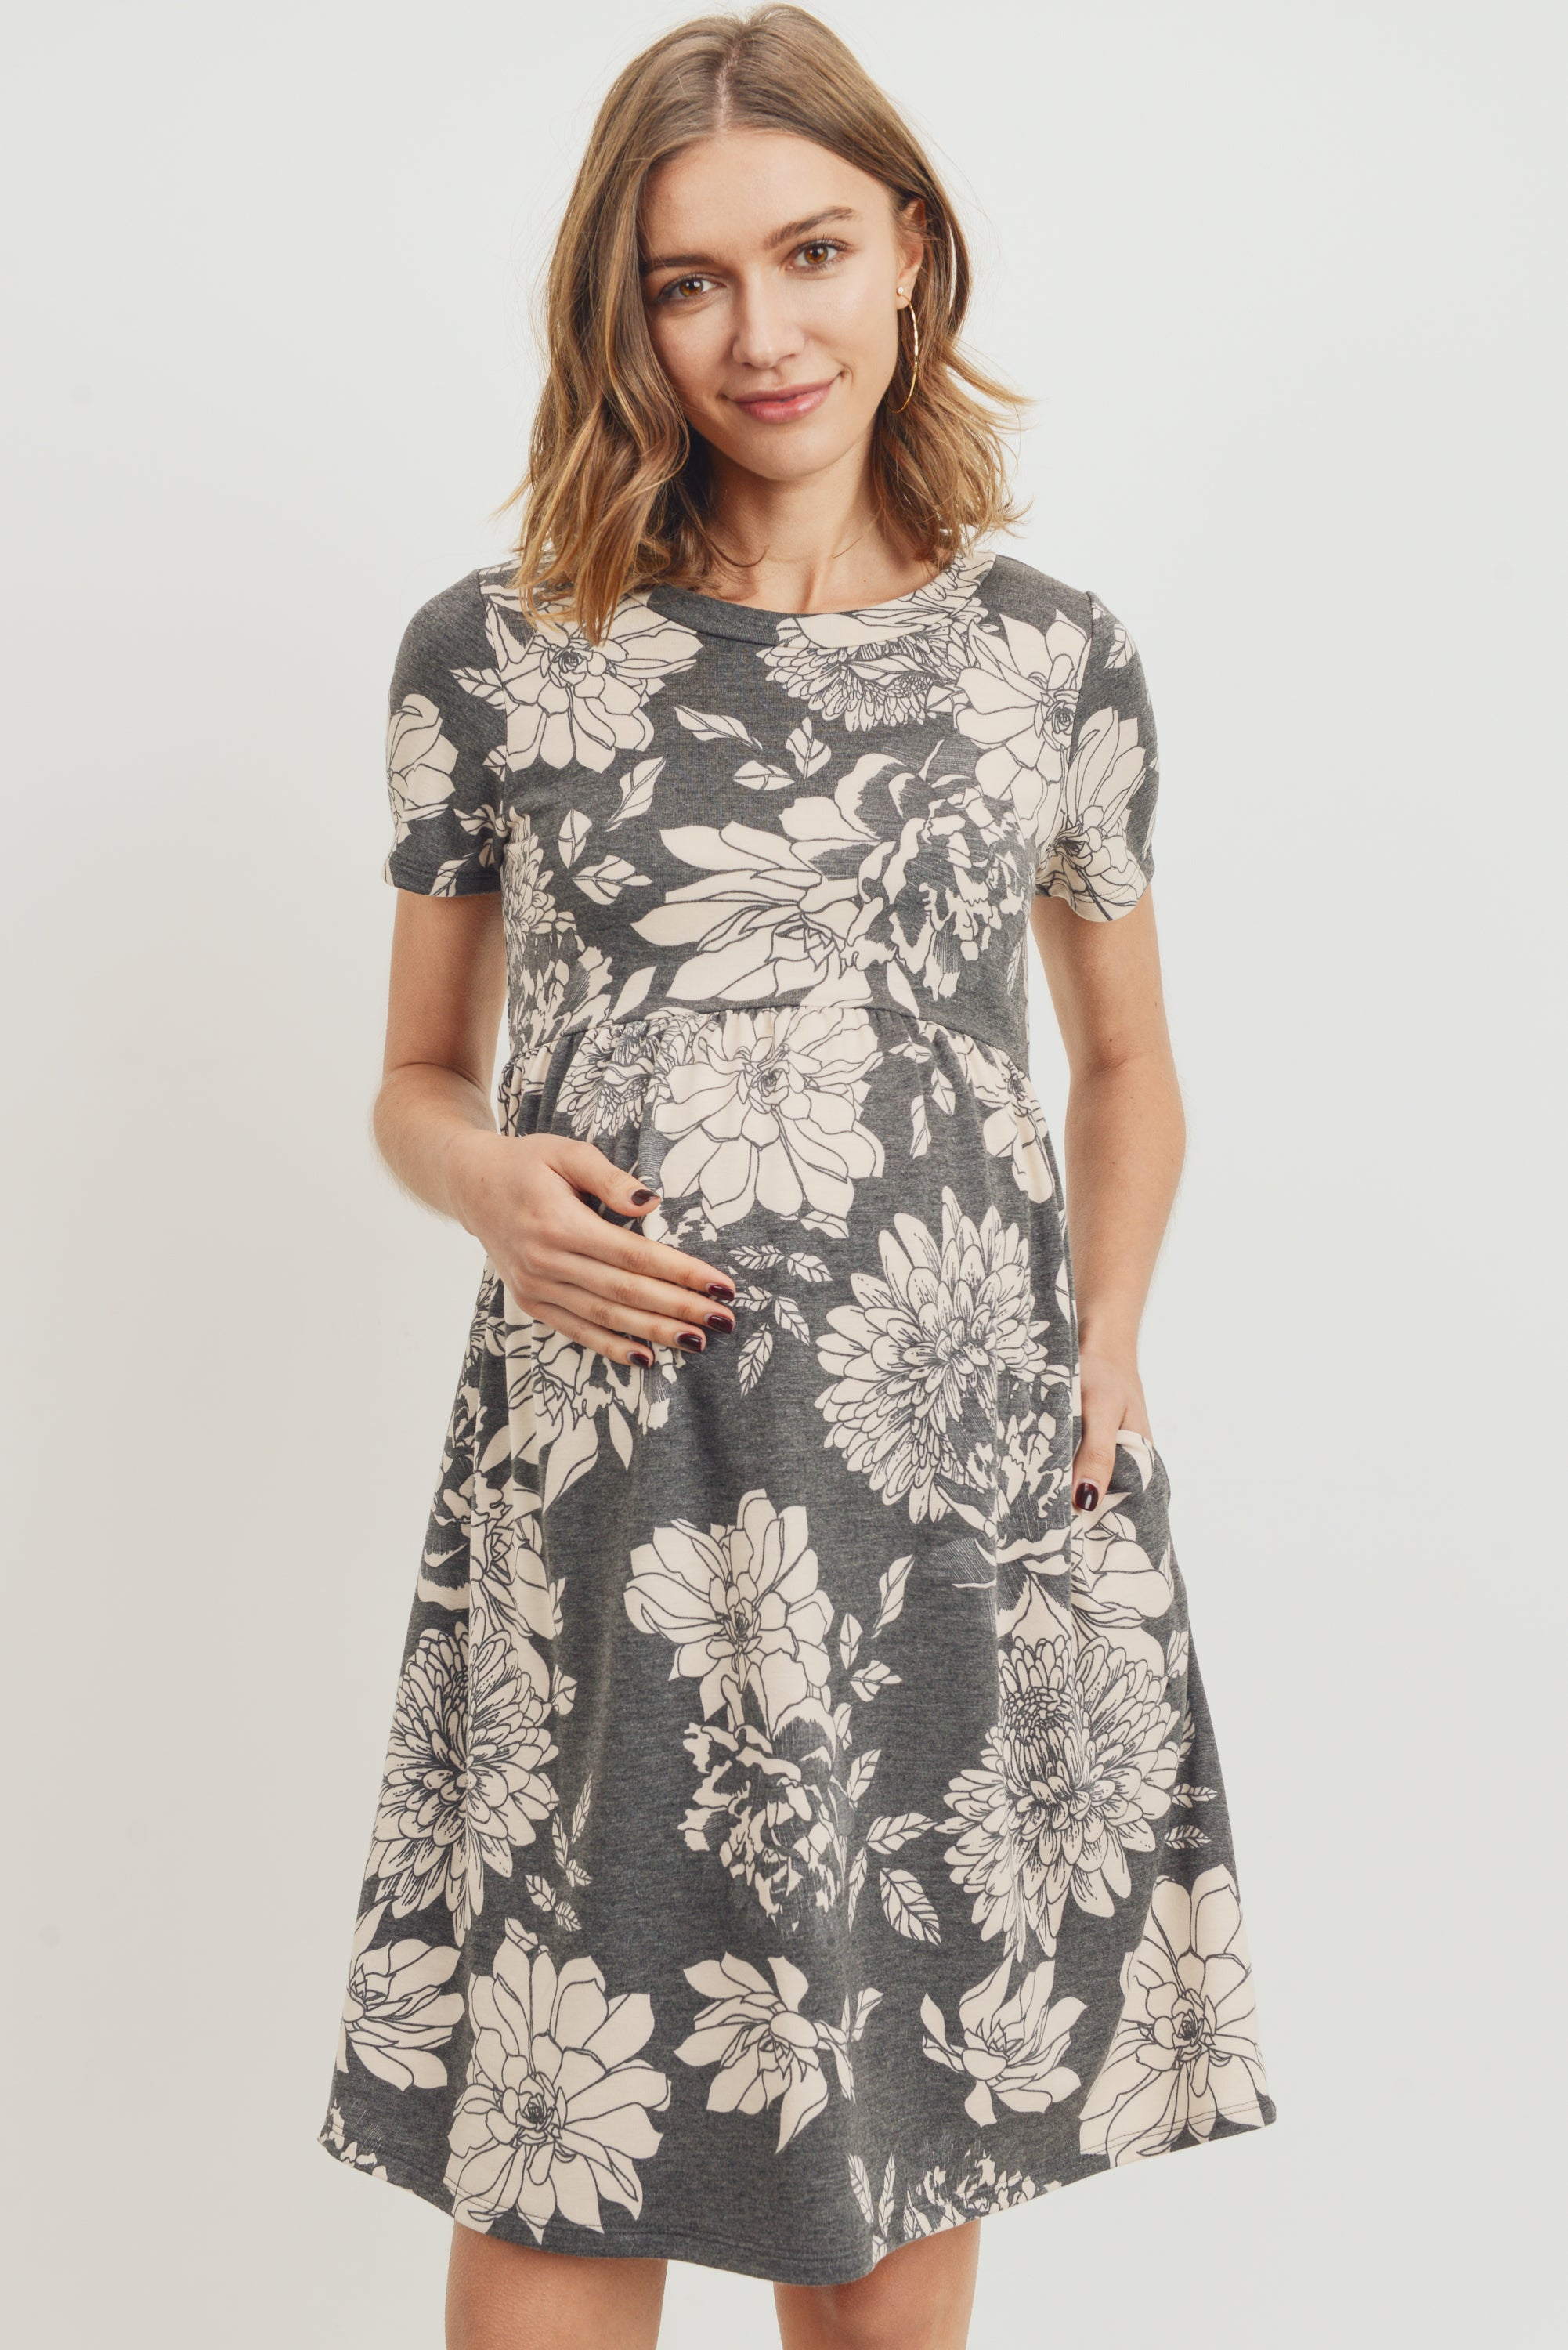 Floral Babydoll Maternity Dress